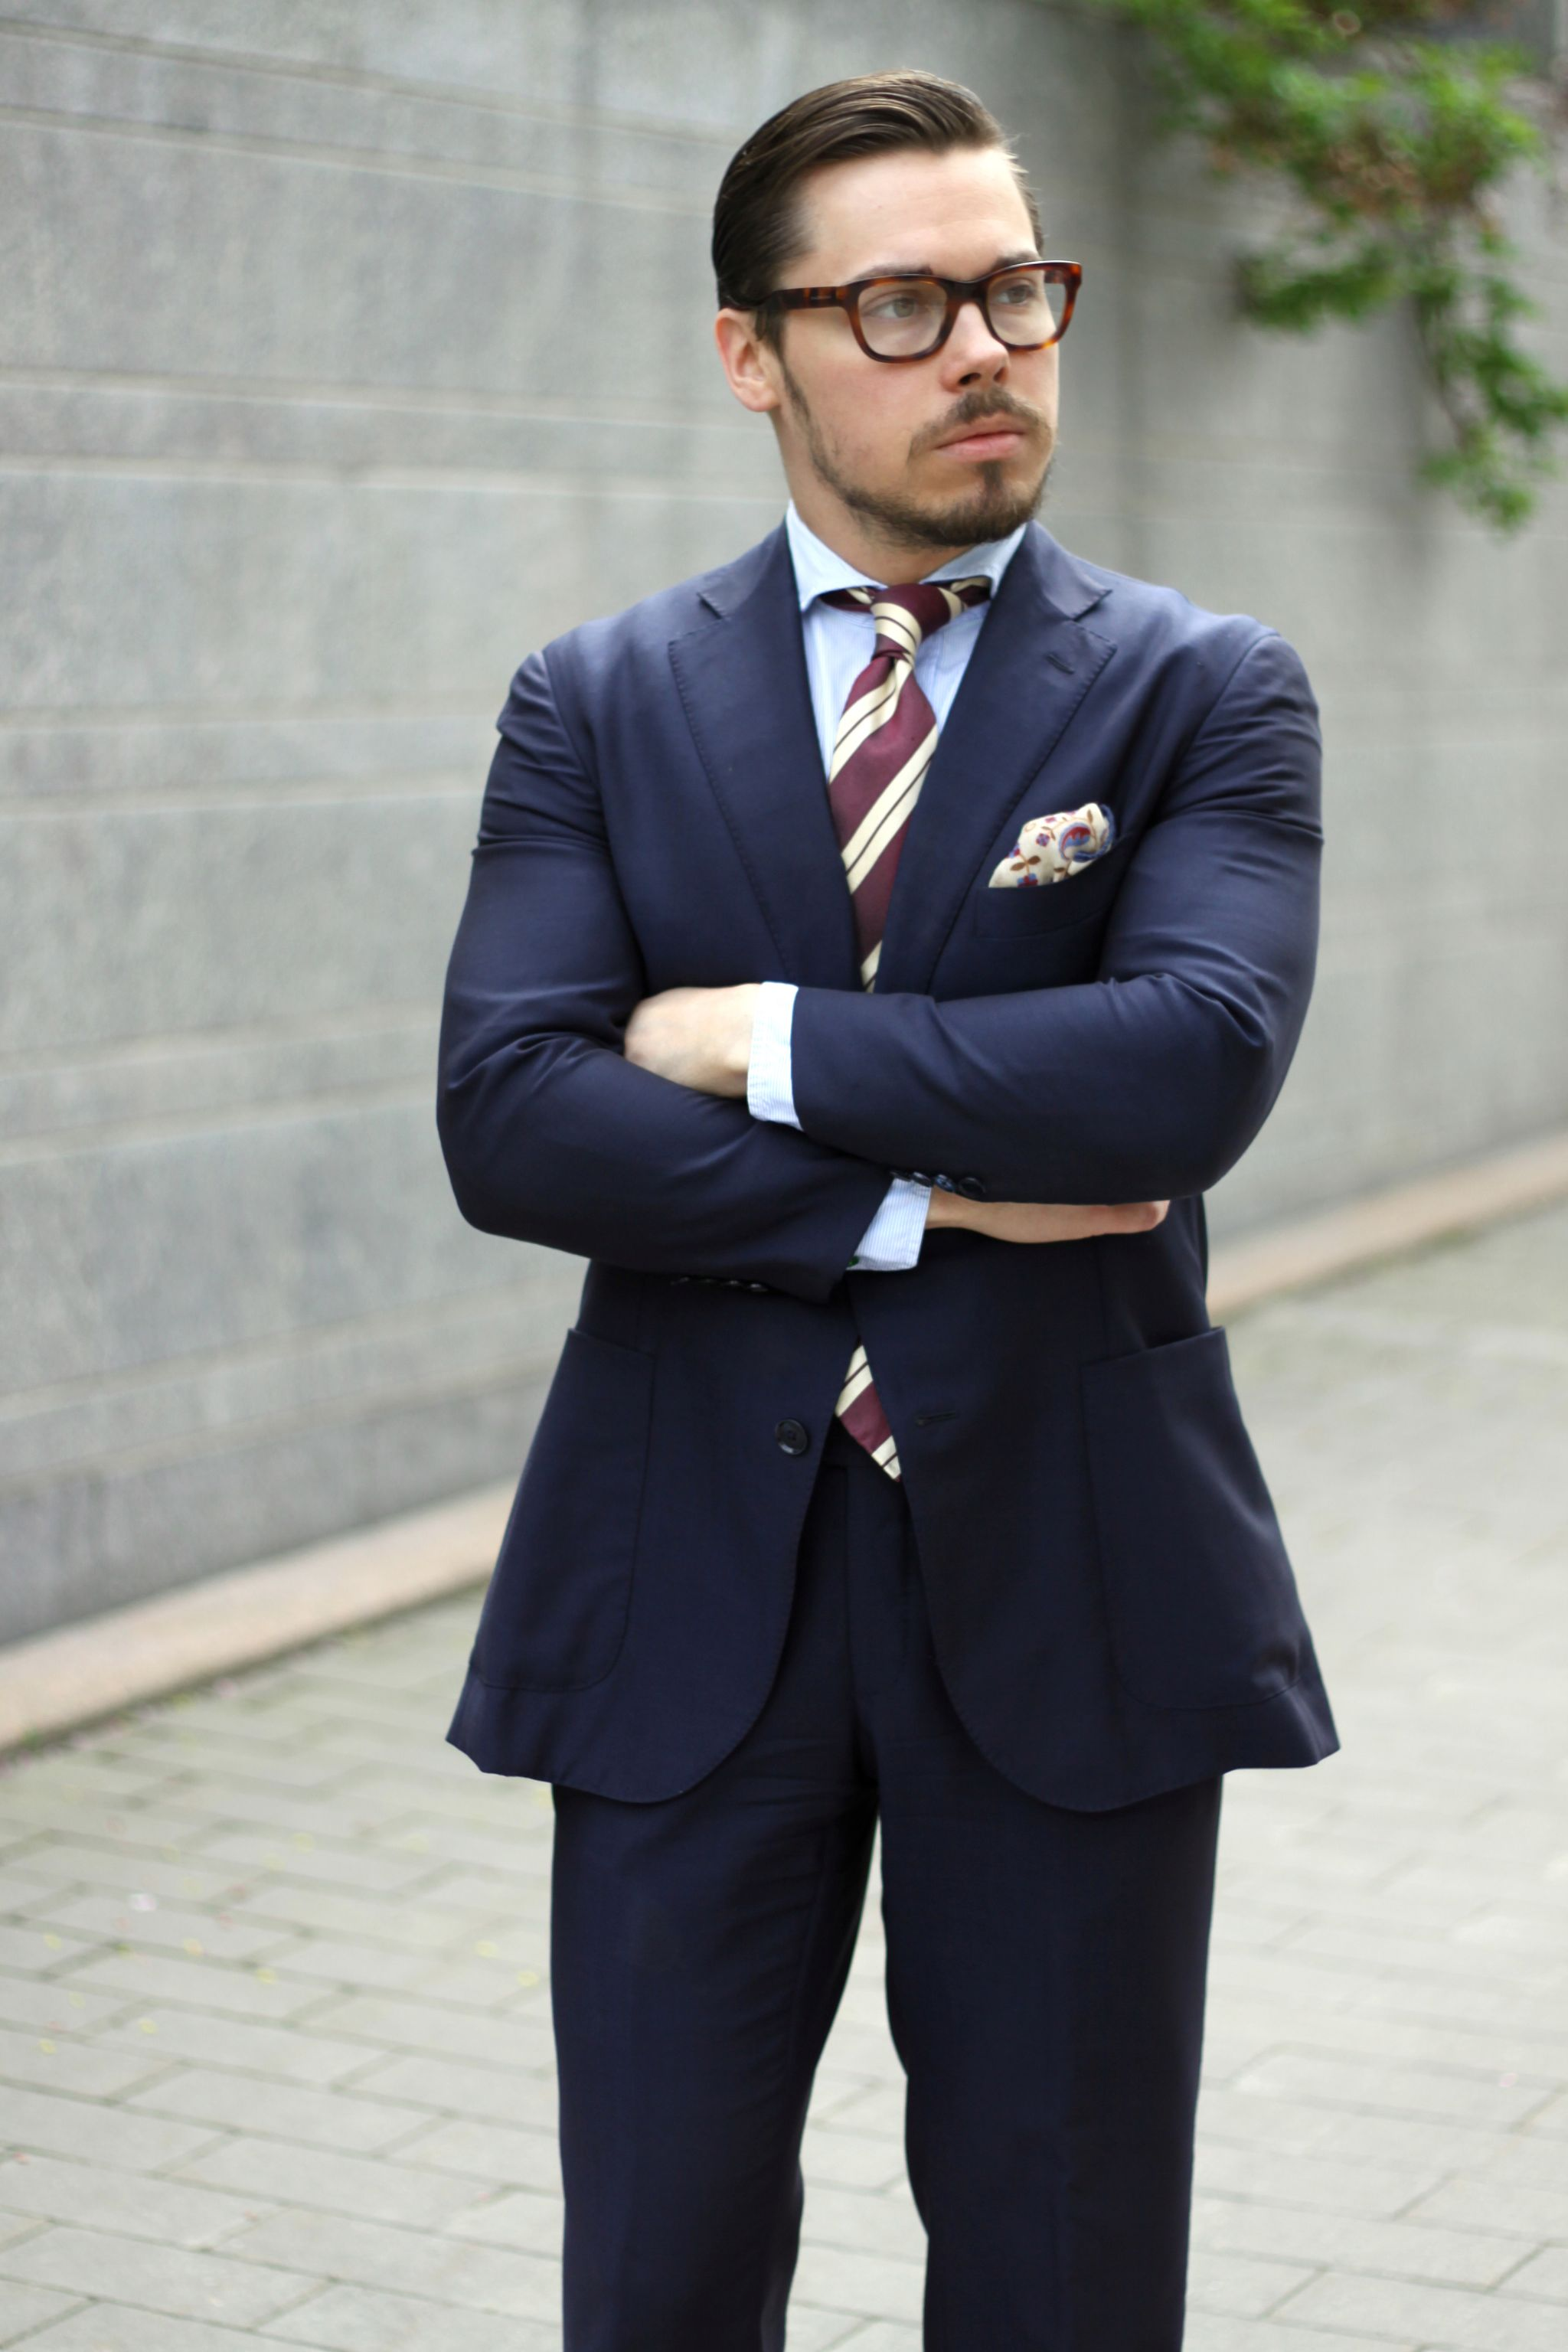 How to wear burgundy accessories - Dark blue Caruso suit with striped shantung tie